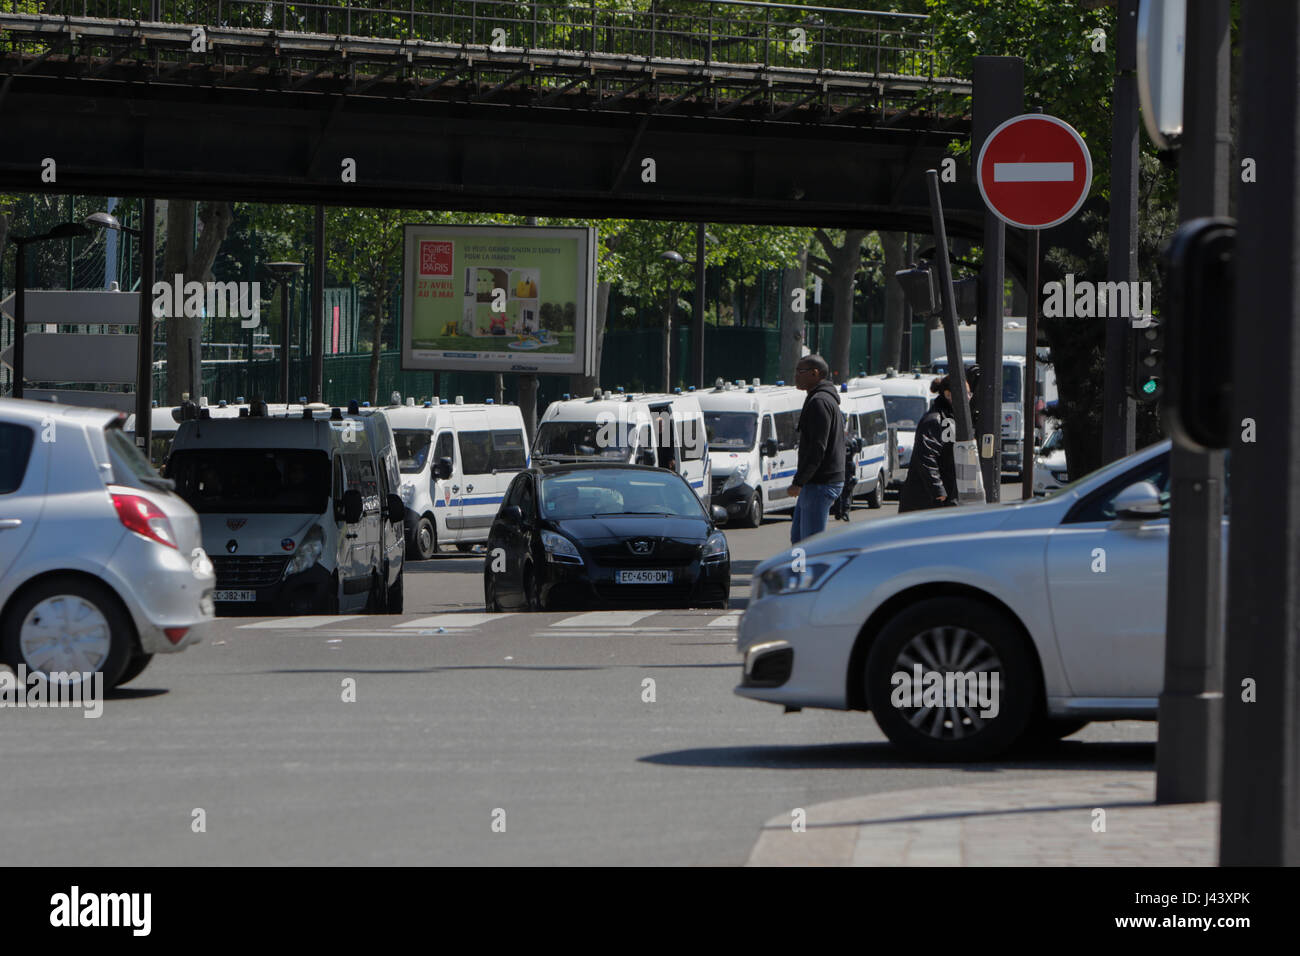 Paris, France. 9th May, 2017. A police presence around the are tries to prevent the refugees from setting up a new - Stock Image